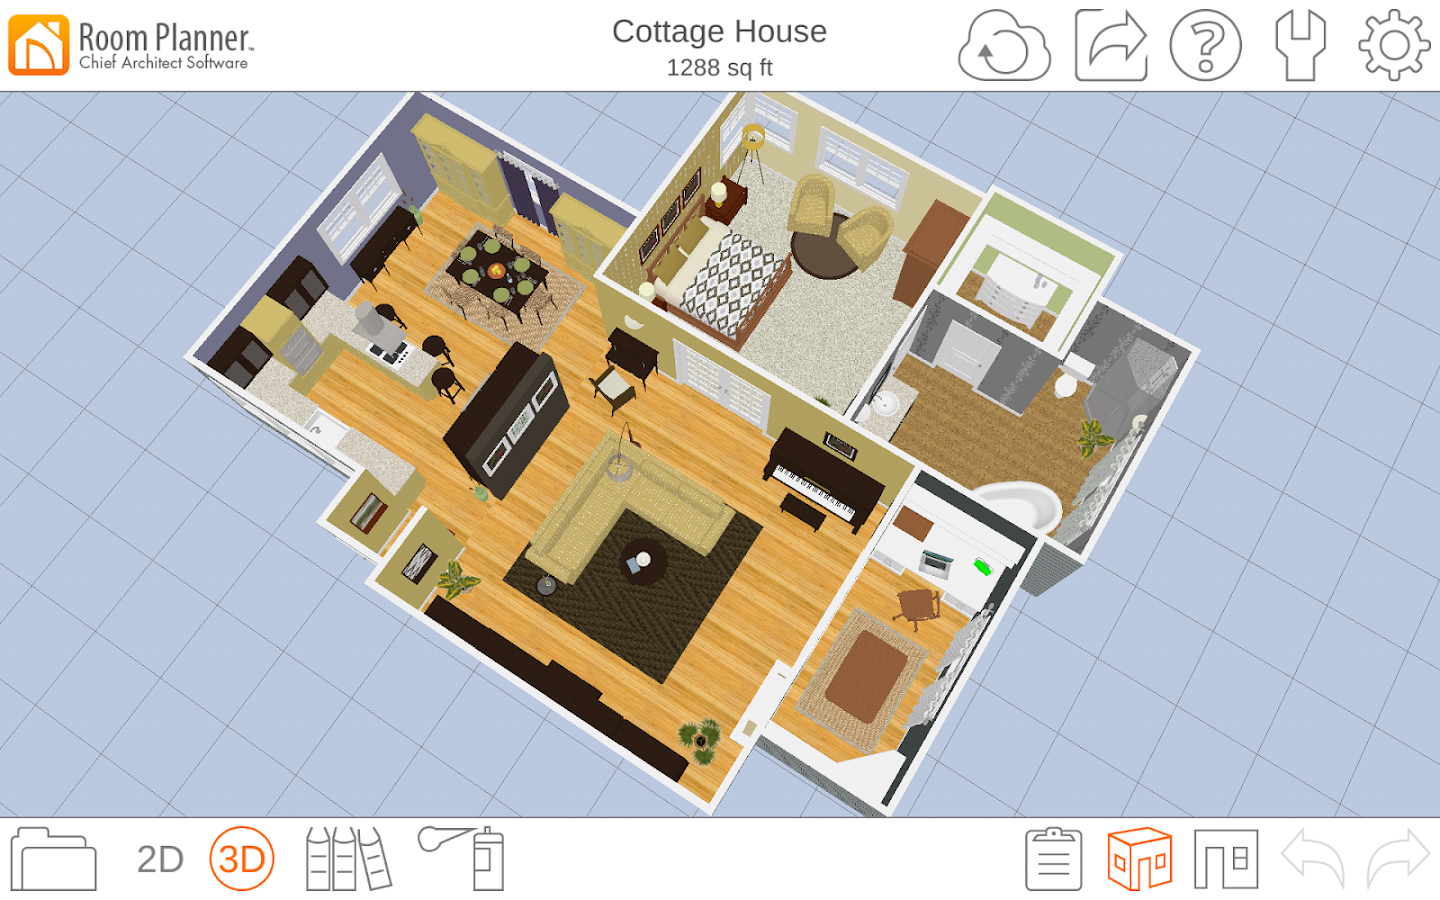 Room planner home design android apps on google play Room design planner